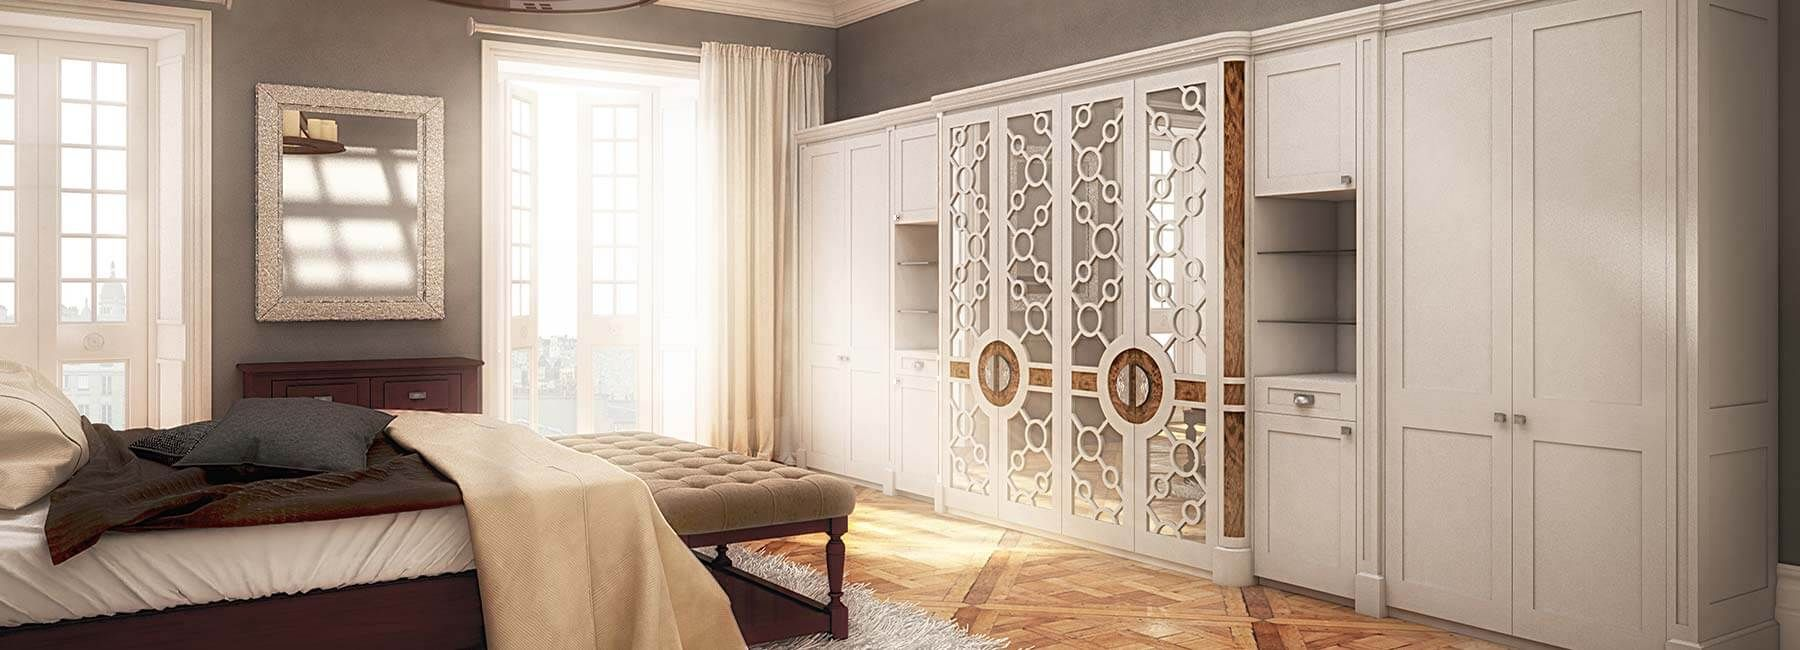 Fitted Furniture Fitted Luxury Furniture Dressing room ideas